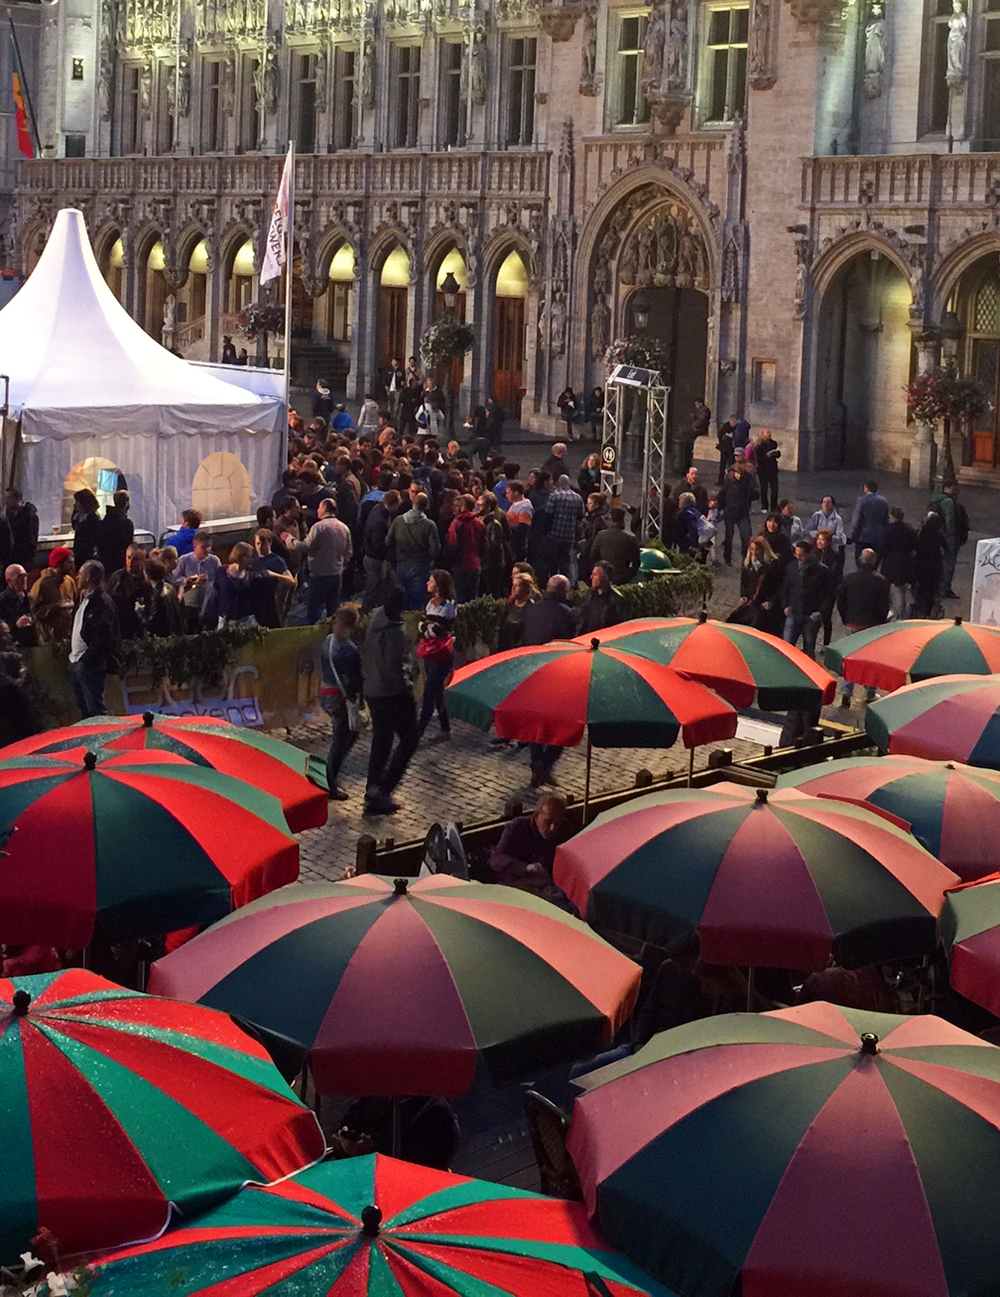 Restaurant umbrellas, beer booth tents, and boulevardiers in front of the Brussels city hall